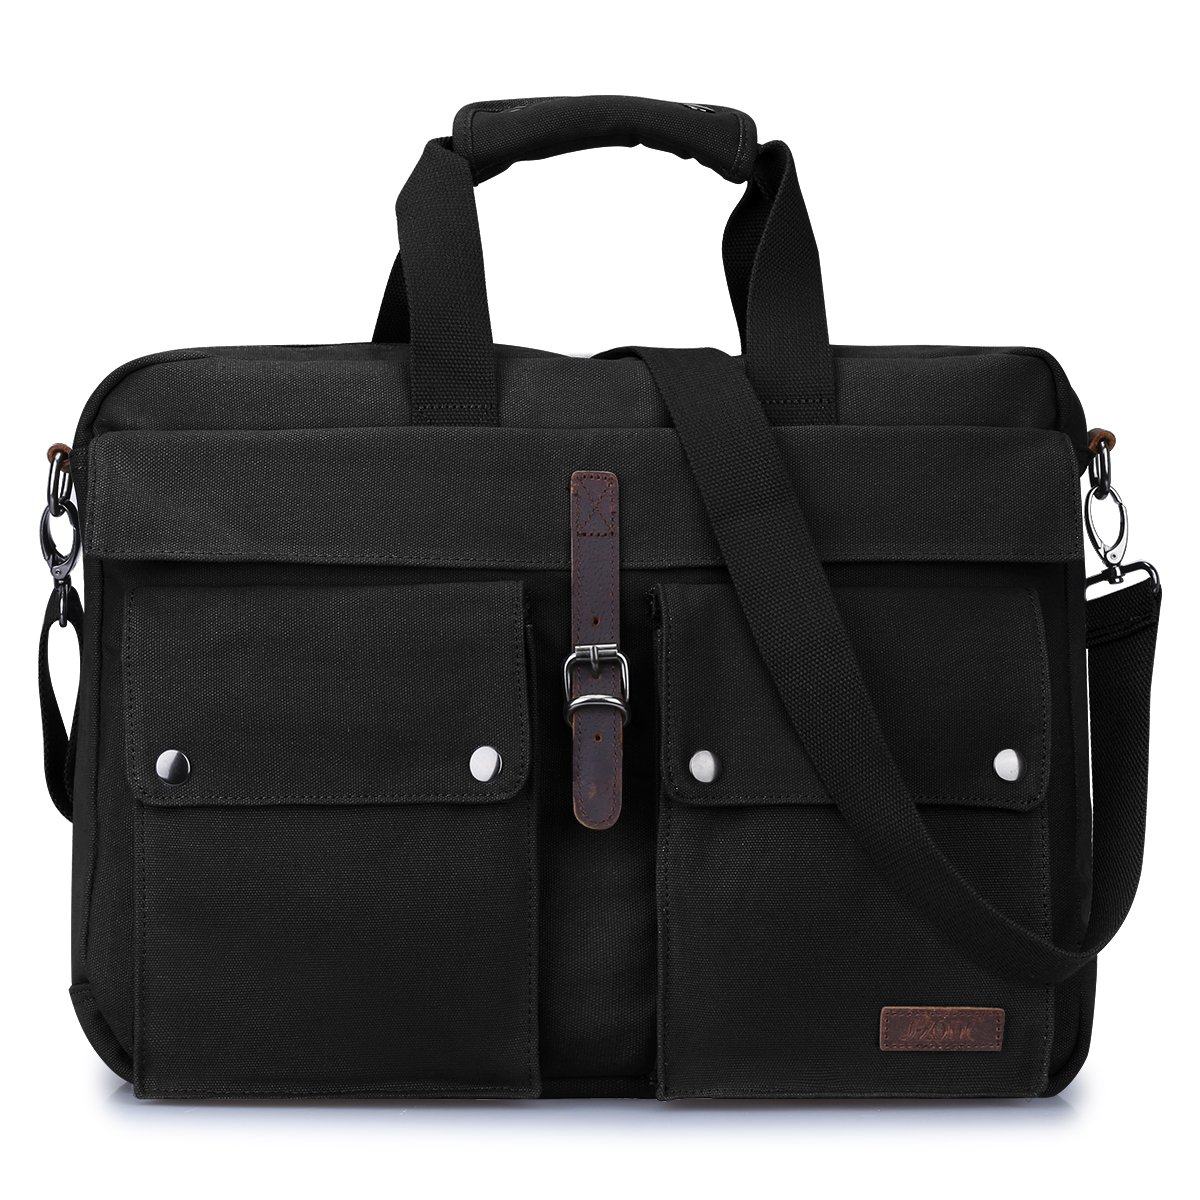 S ZONE Canvas 17 Inch Laptop Messenger Bag Multicompartment Travel Shoulder Bag Briefcase Black